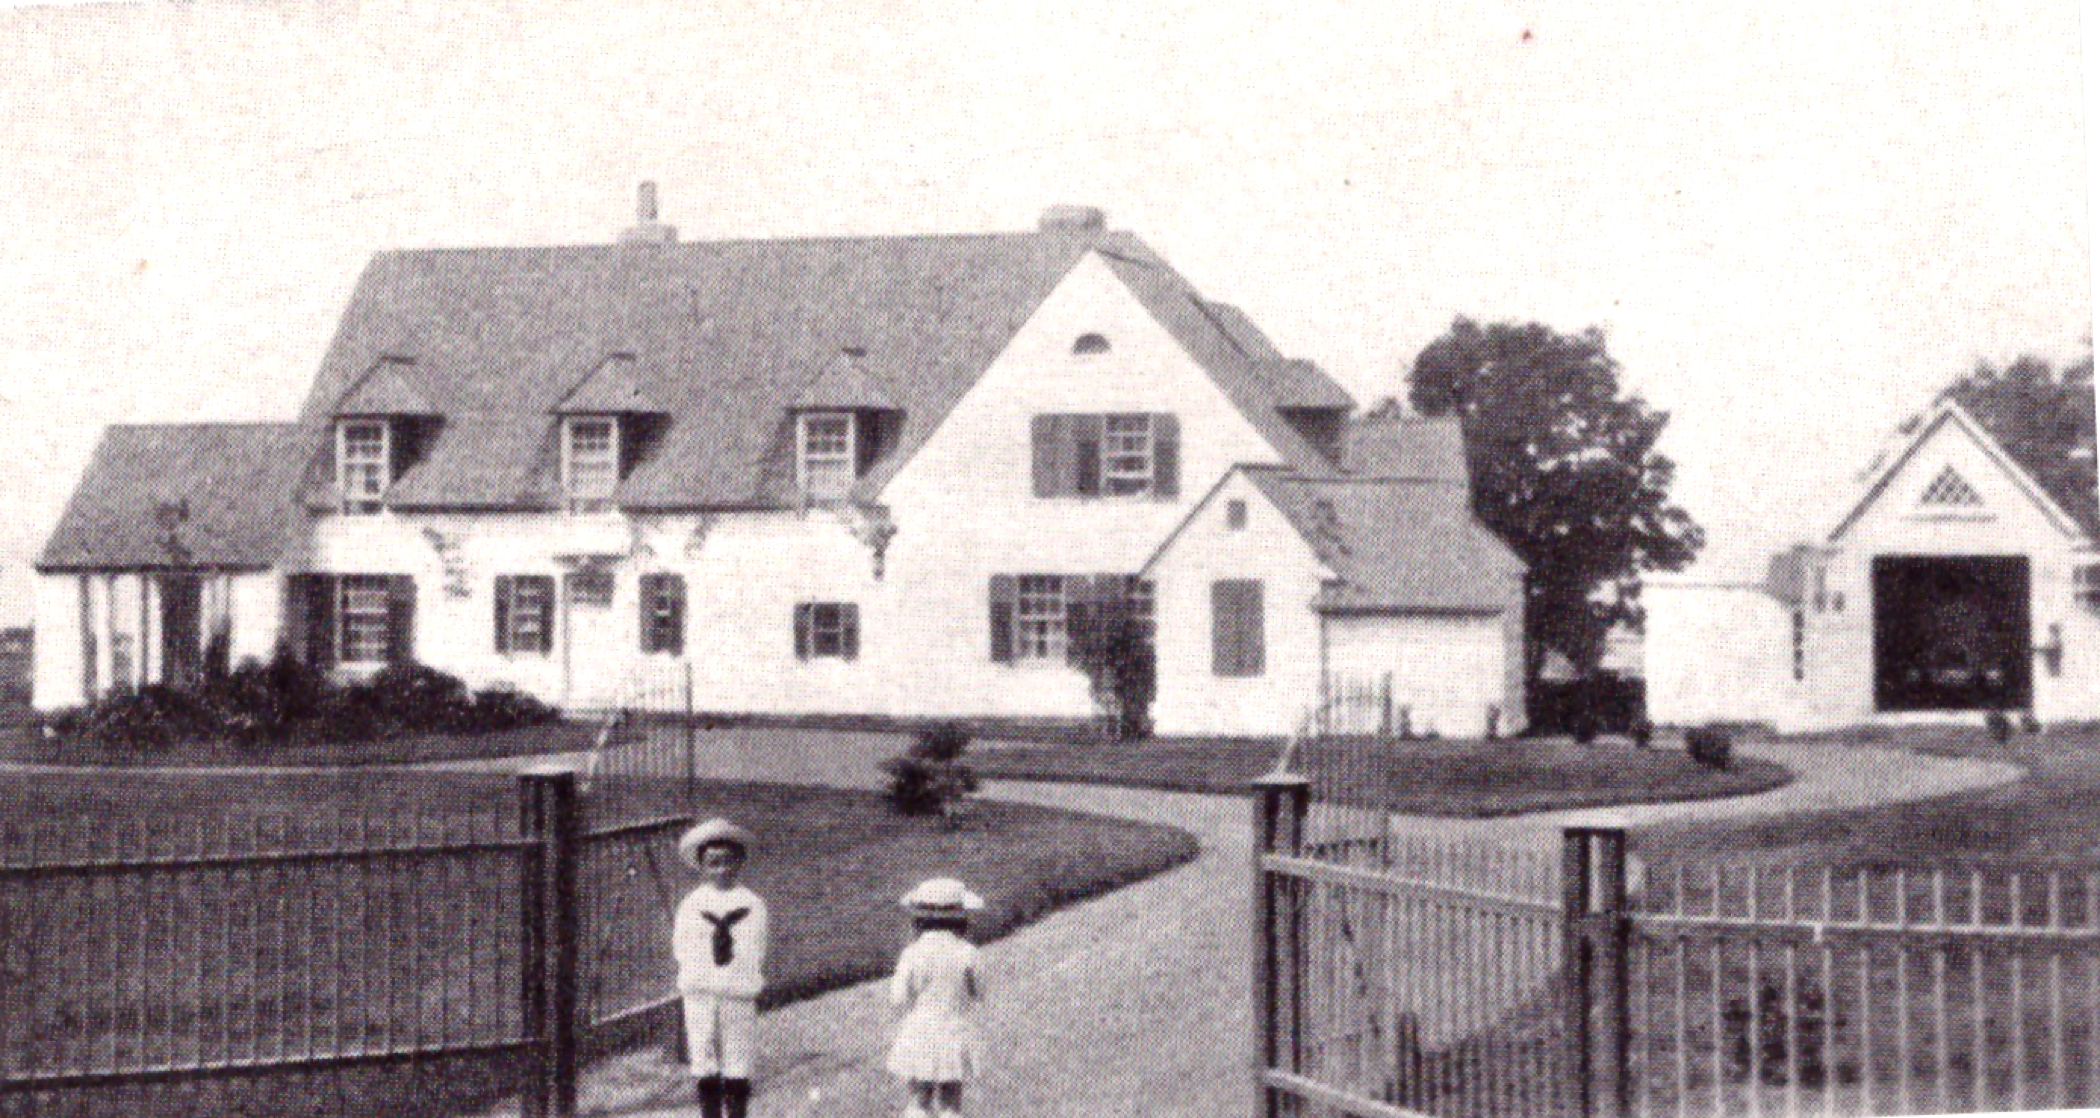 Sepia-toned photograph of an expansive house (Kenneth Molson's estate) surrounded by an iron fence with gate, and two small children in sailor suits in the foreground.